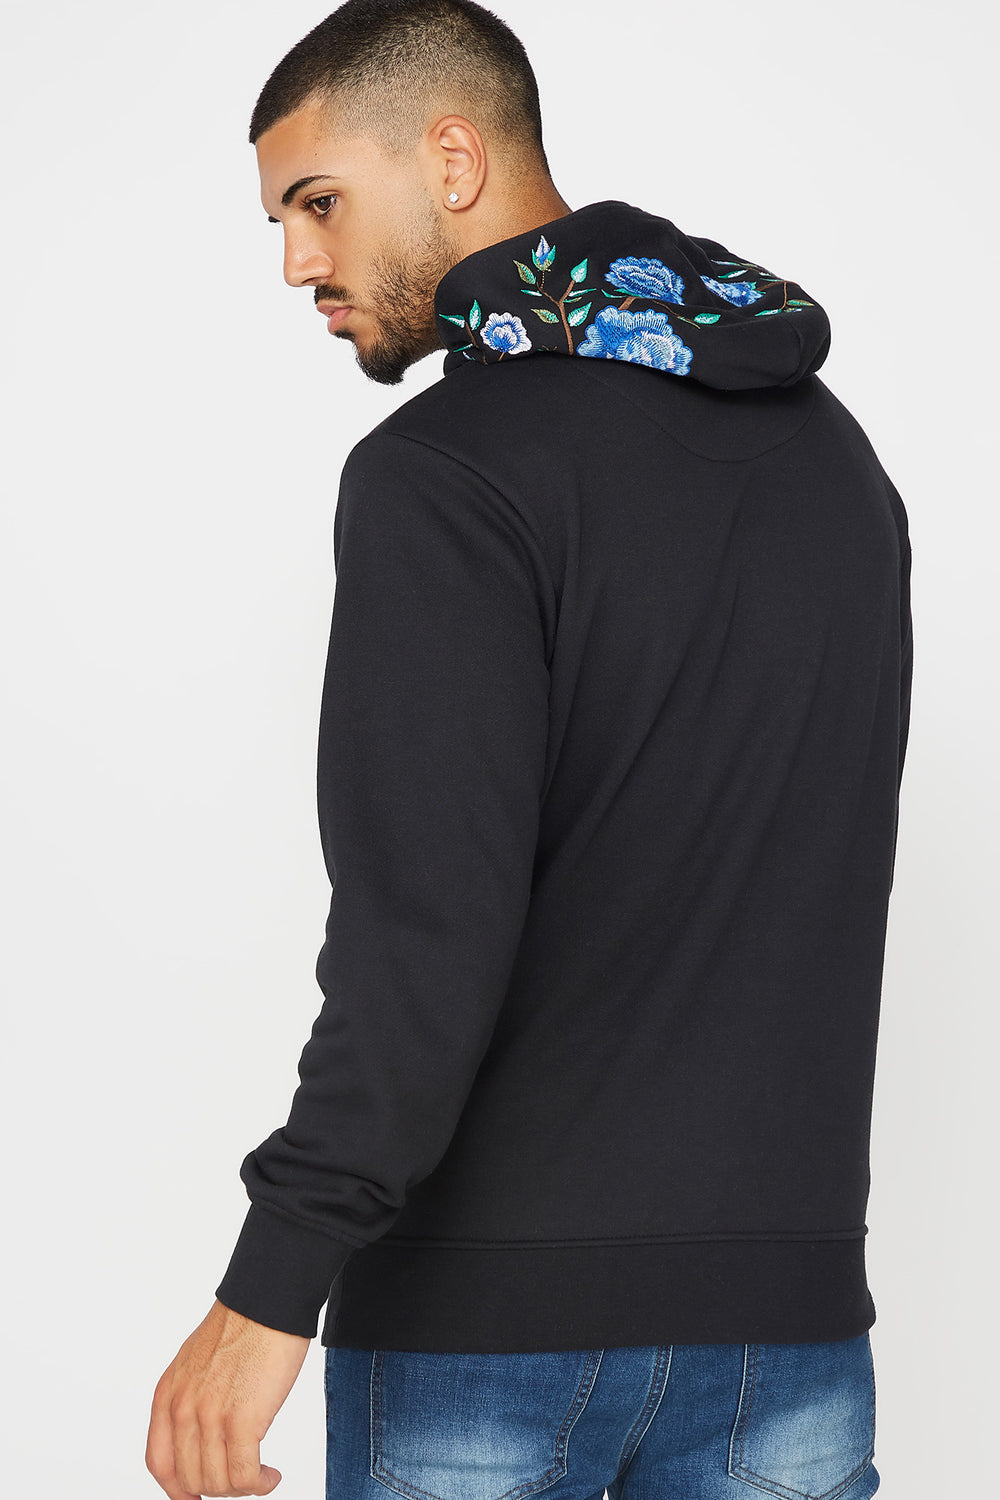 Floral Embroidered Pullover Hoodie Black